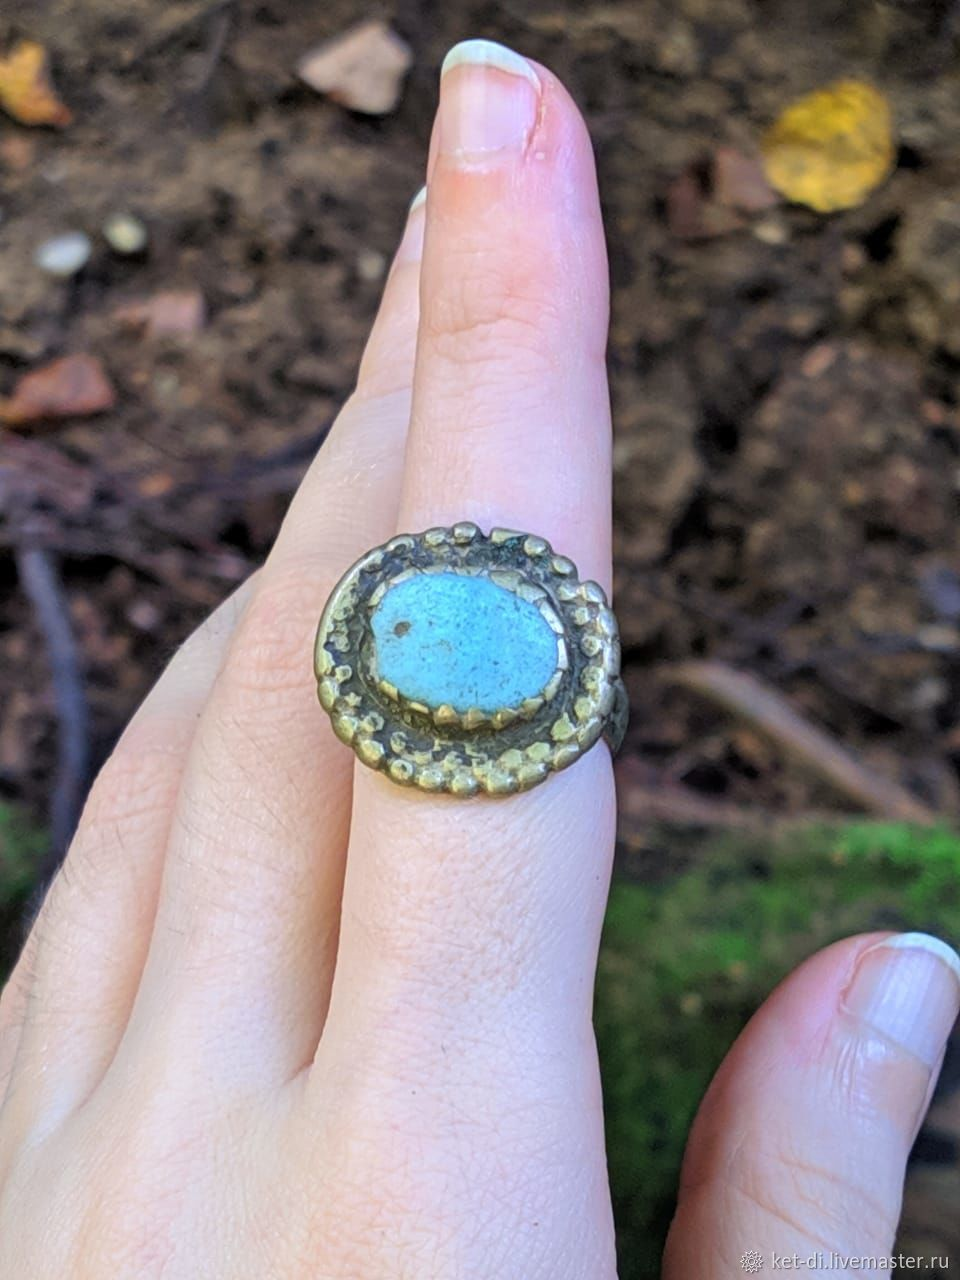 Vintage ring with blue stone, Rings, Moscow,  Фото №1